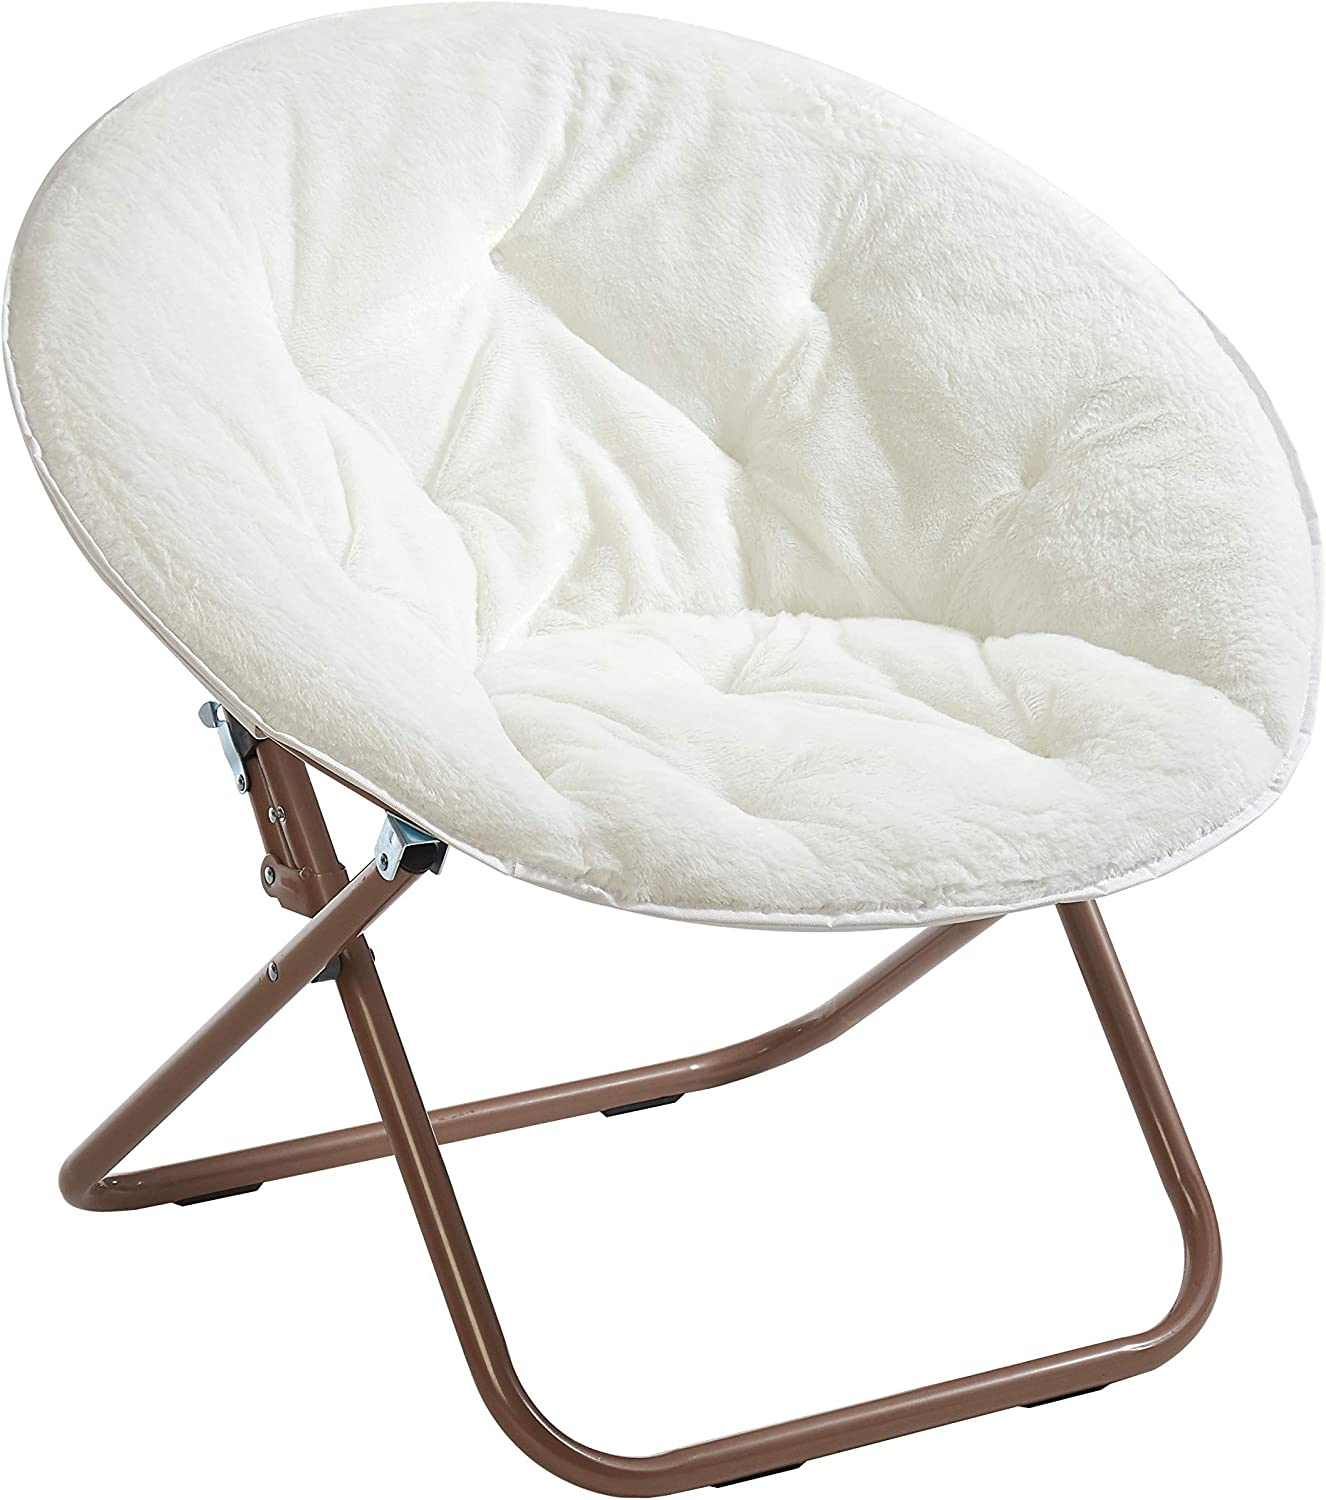 Amazon Com Urban Shop Faux Fur Saucer Chair With Metal Frame One Size White Furniture Decor